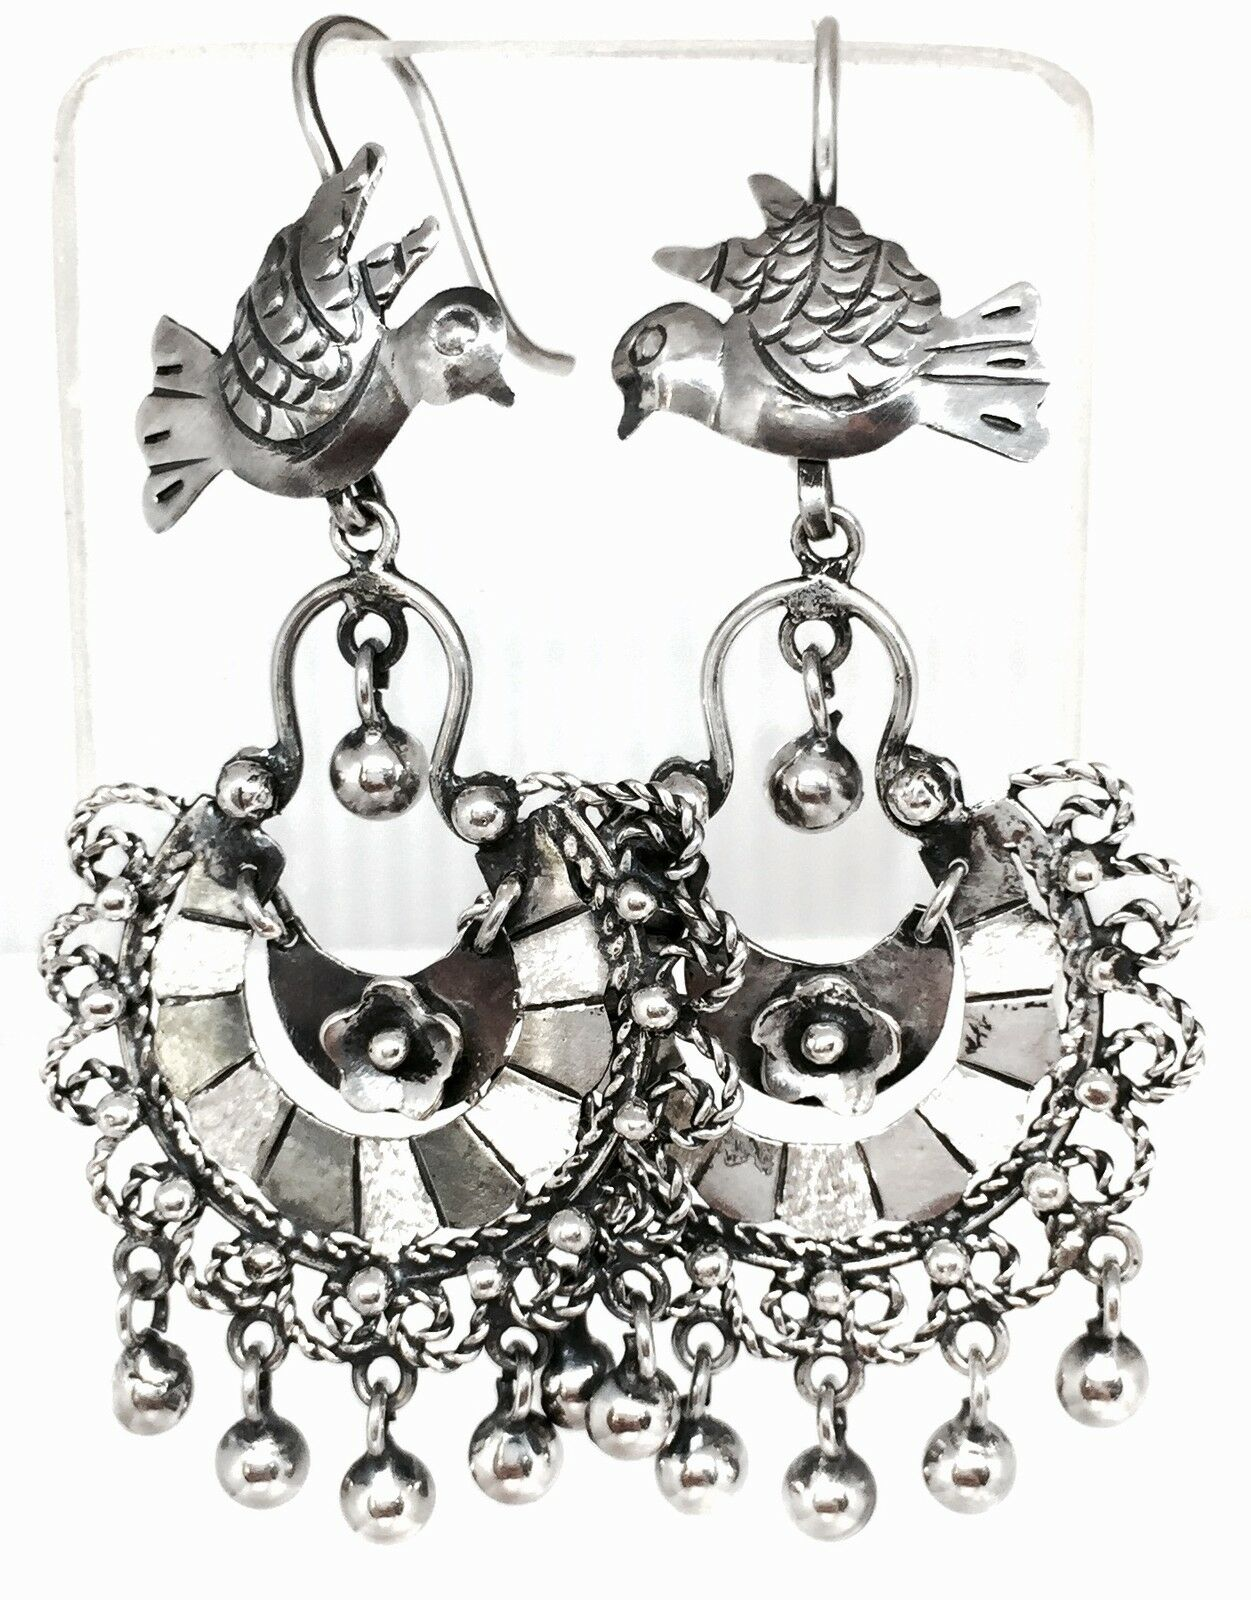 Mexico Frida Kahlo Earrings BIG Mexican Early Sterling Earrings Screwback Cuernavaca FREE US Shipping